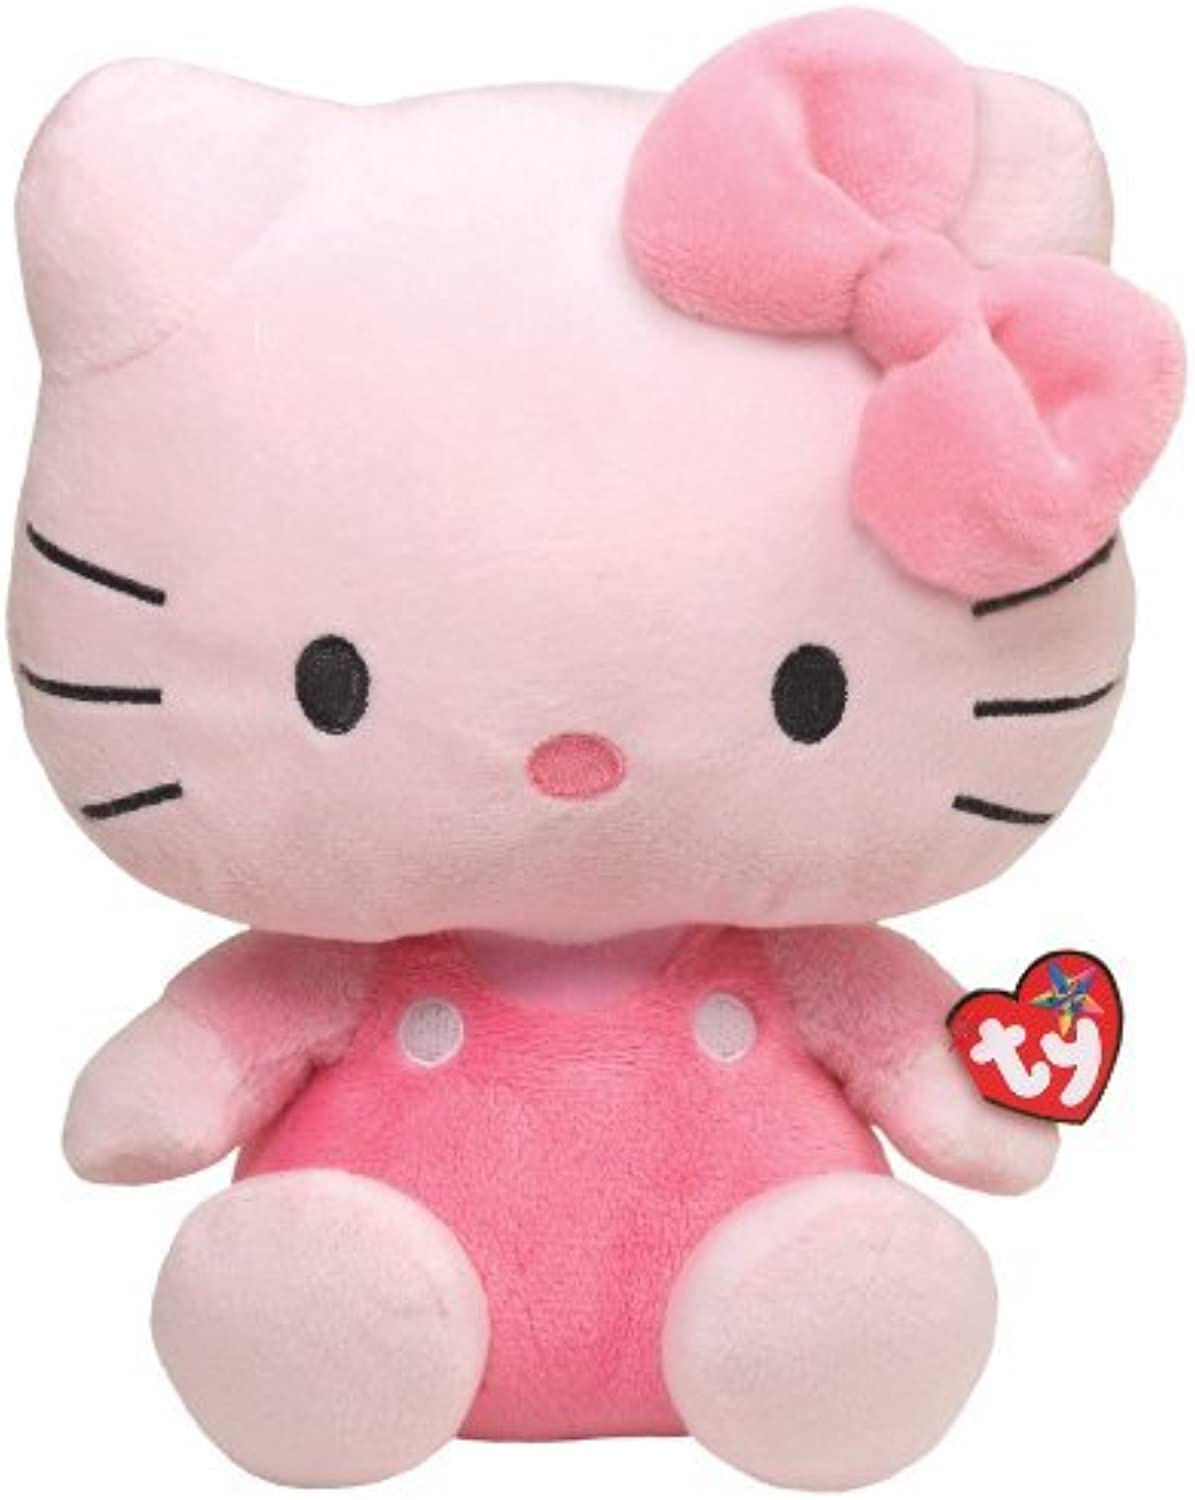 Ty Beanie Buddy Hello Kitty - All Pink (Large) by Ty